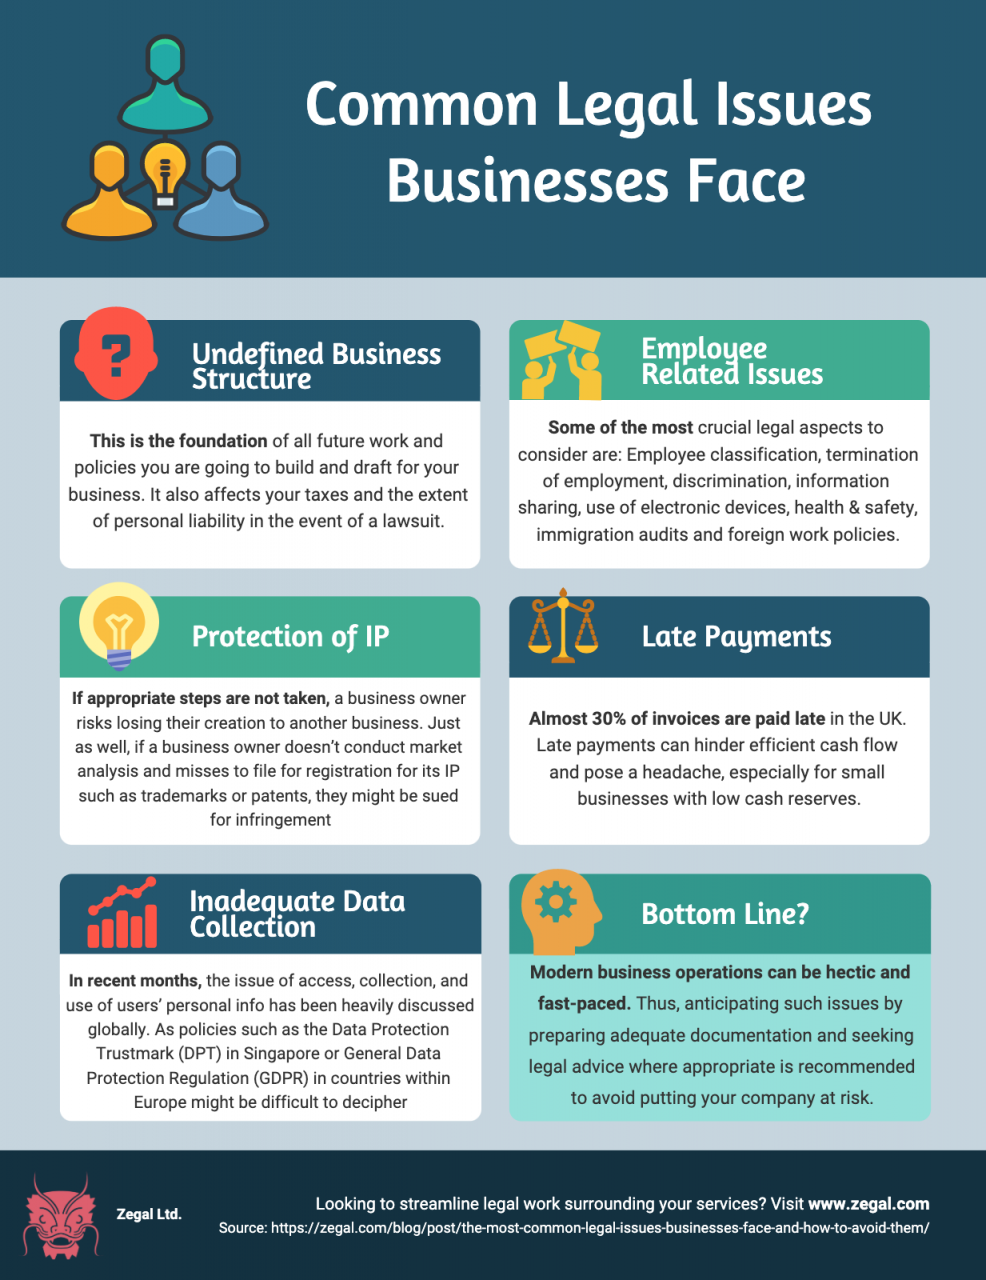 Infographic summarising Common Legal Issues Businesses Face and How to Avoid Them